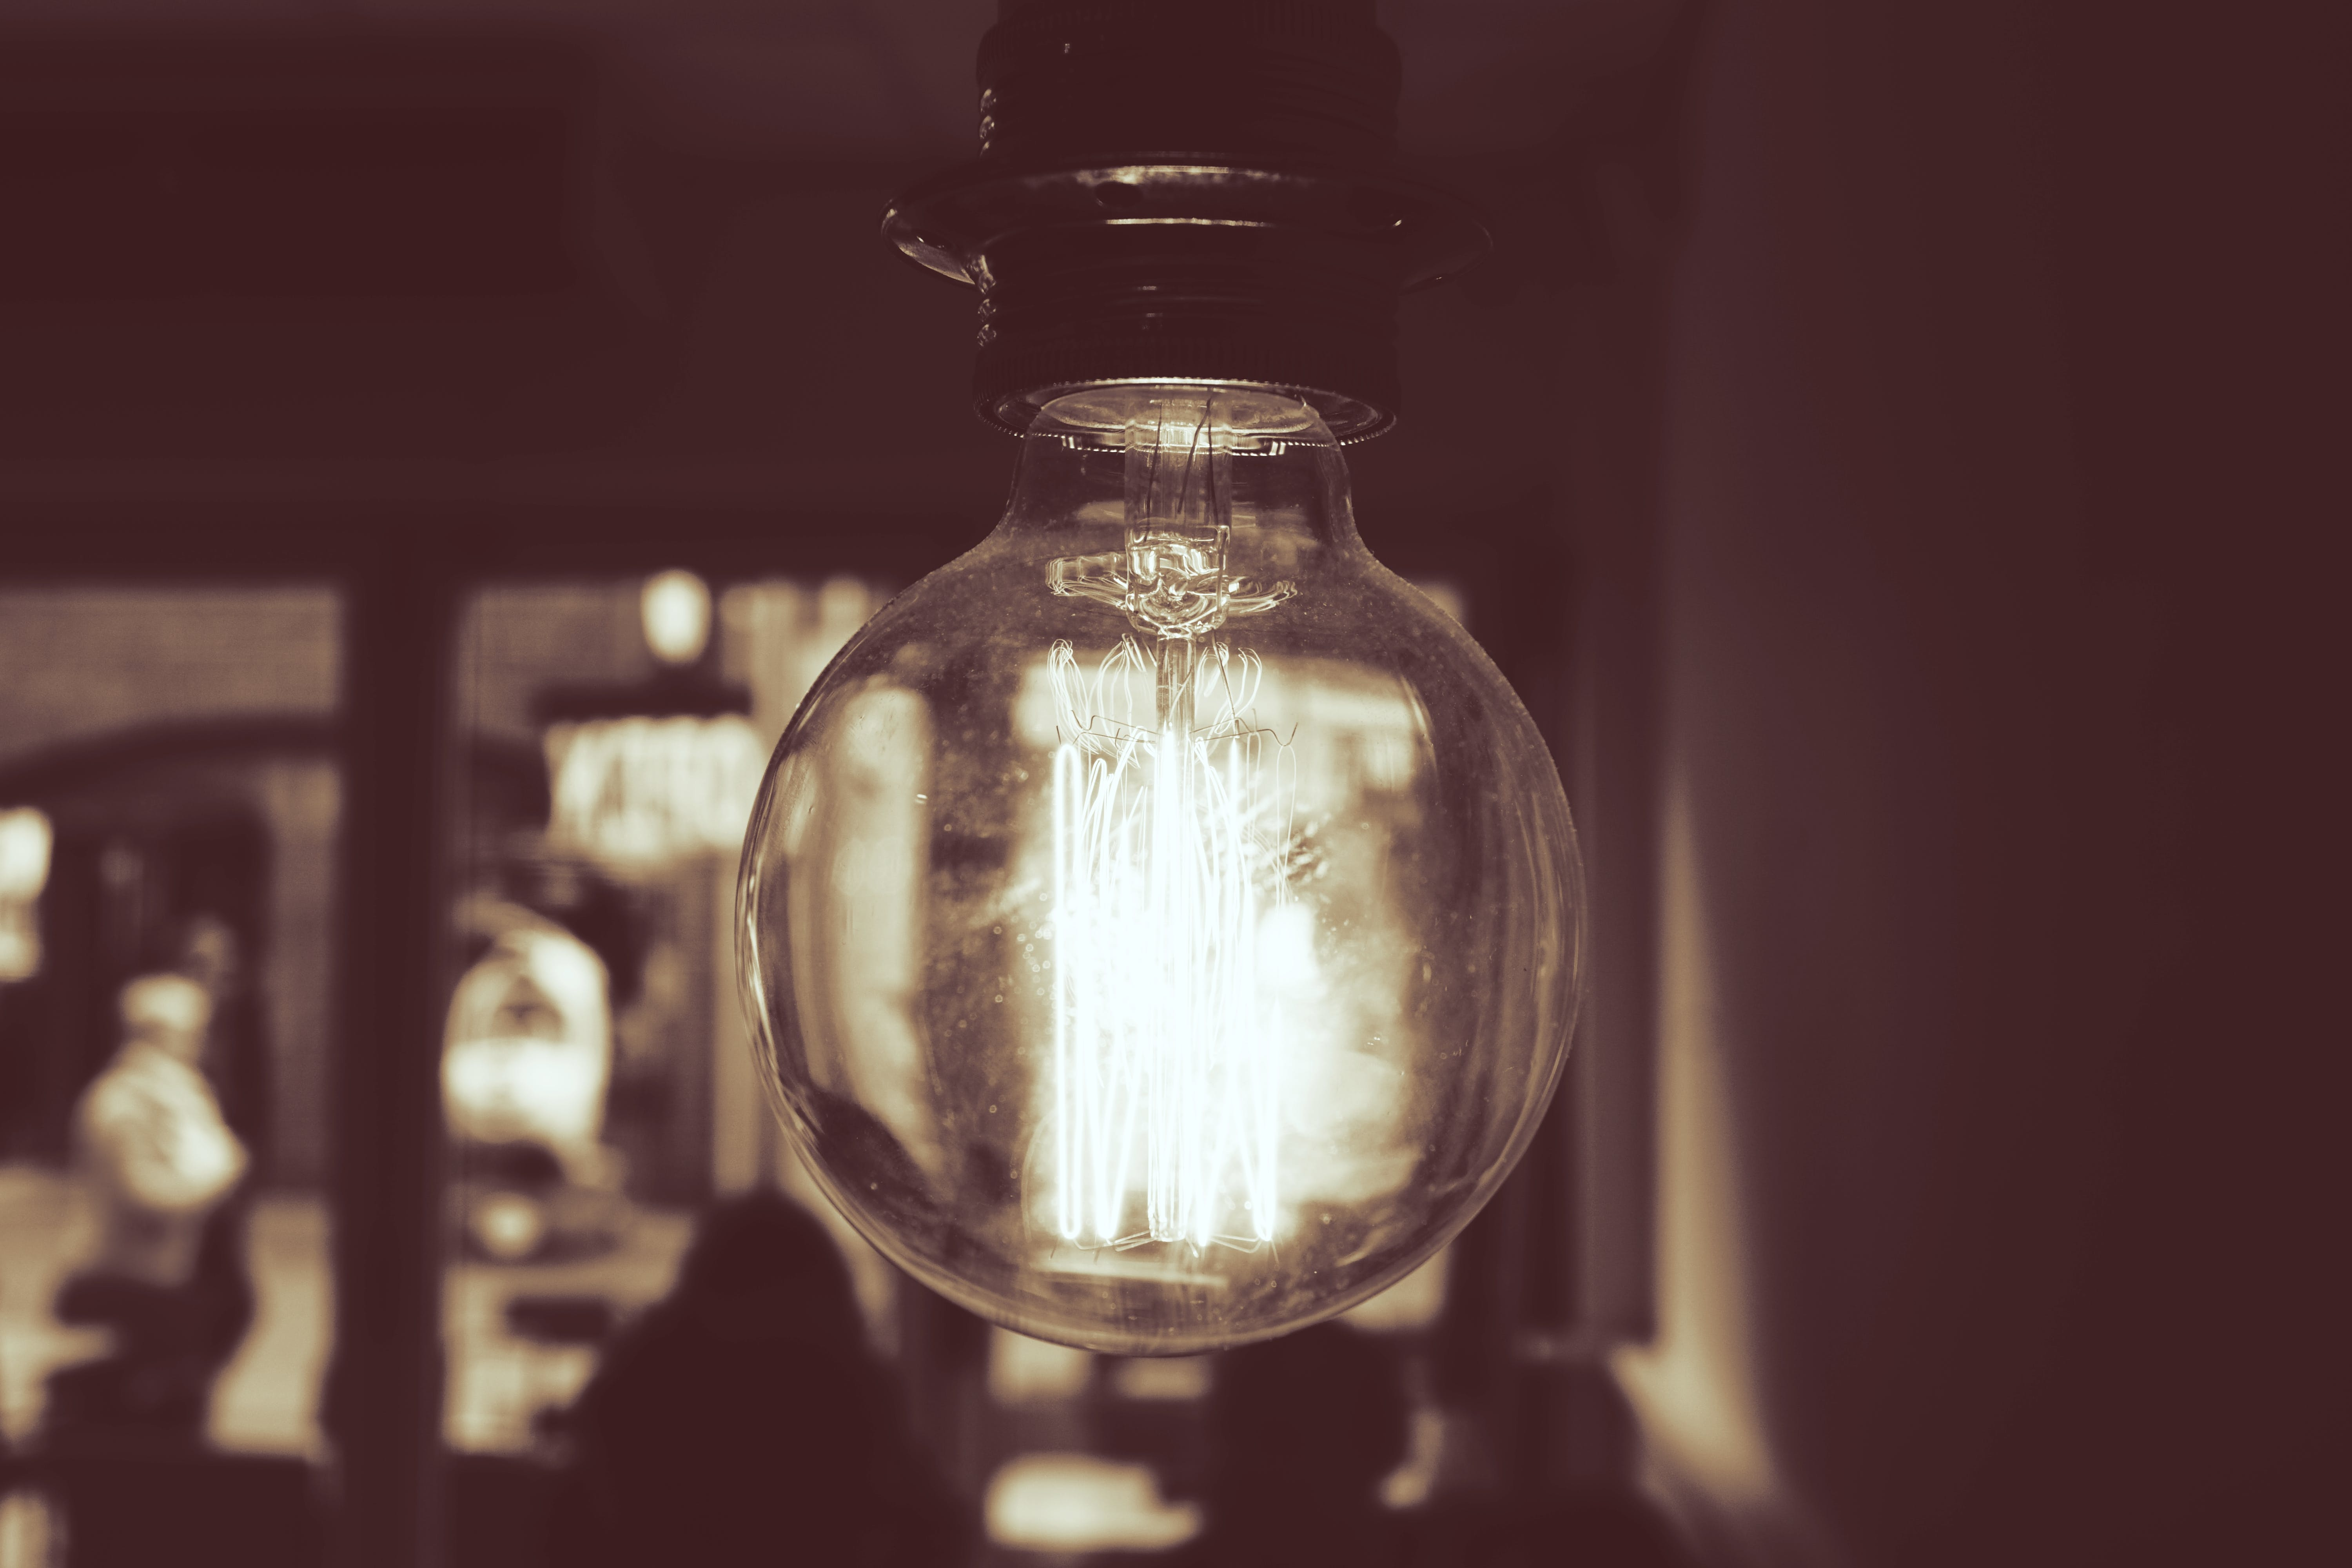 Free stock photo of light, people, dark, glass